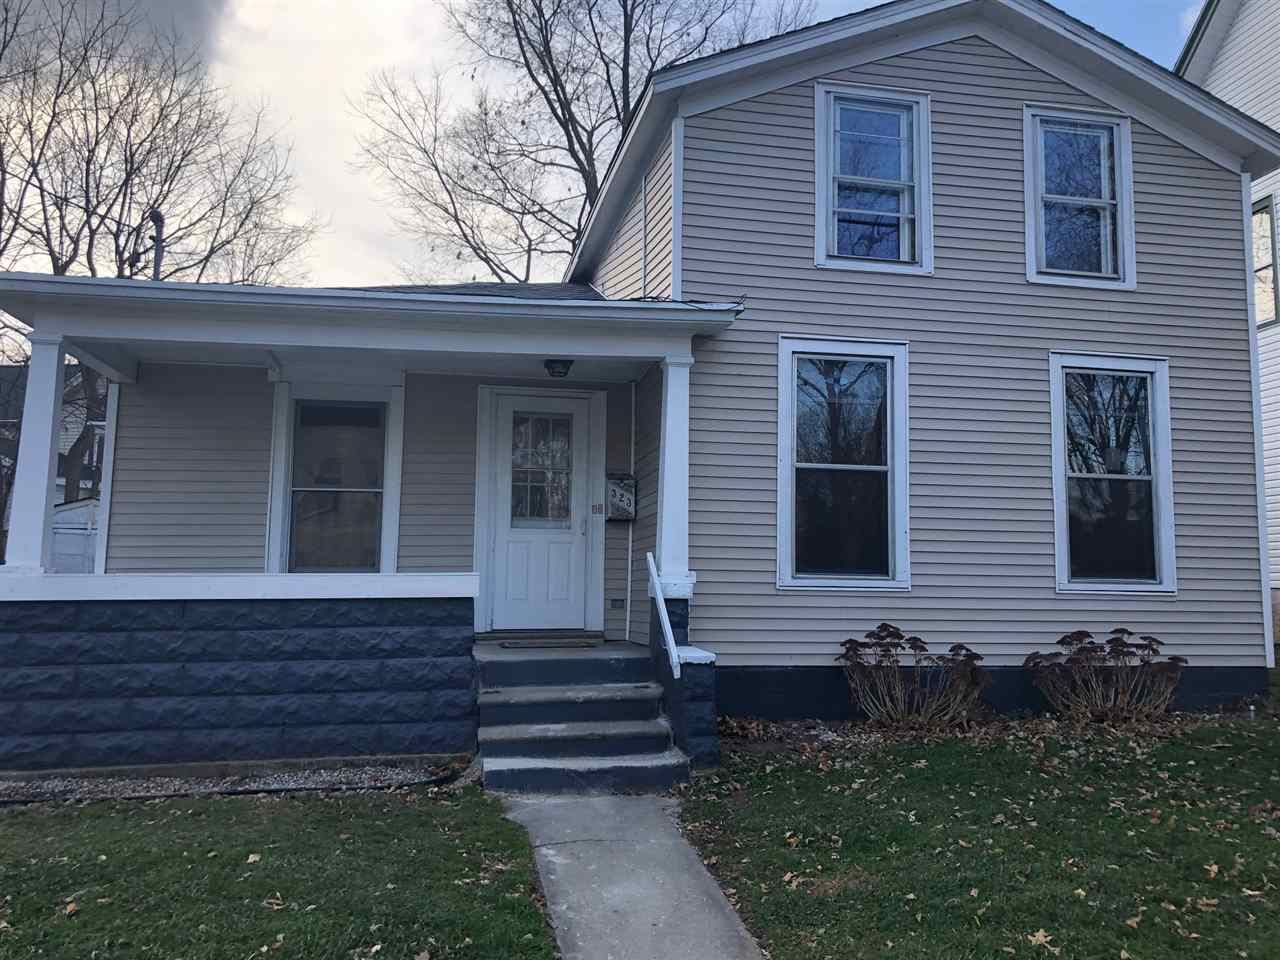 323 N High St, Janesville, WI 53548 - MLS#: 1898415